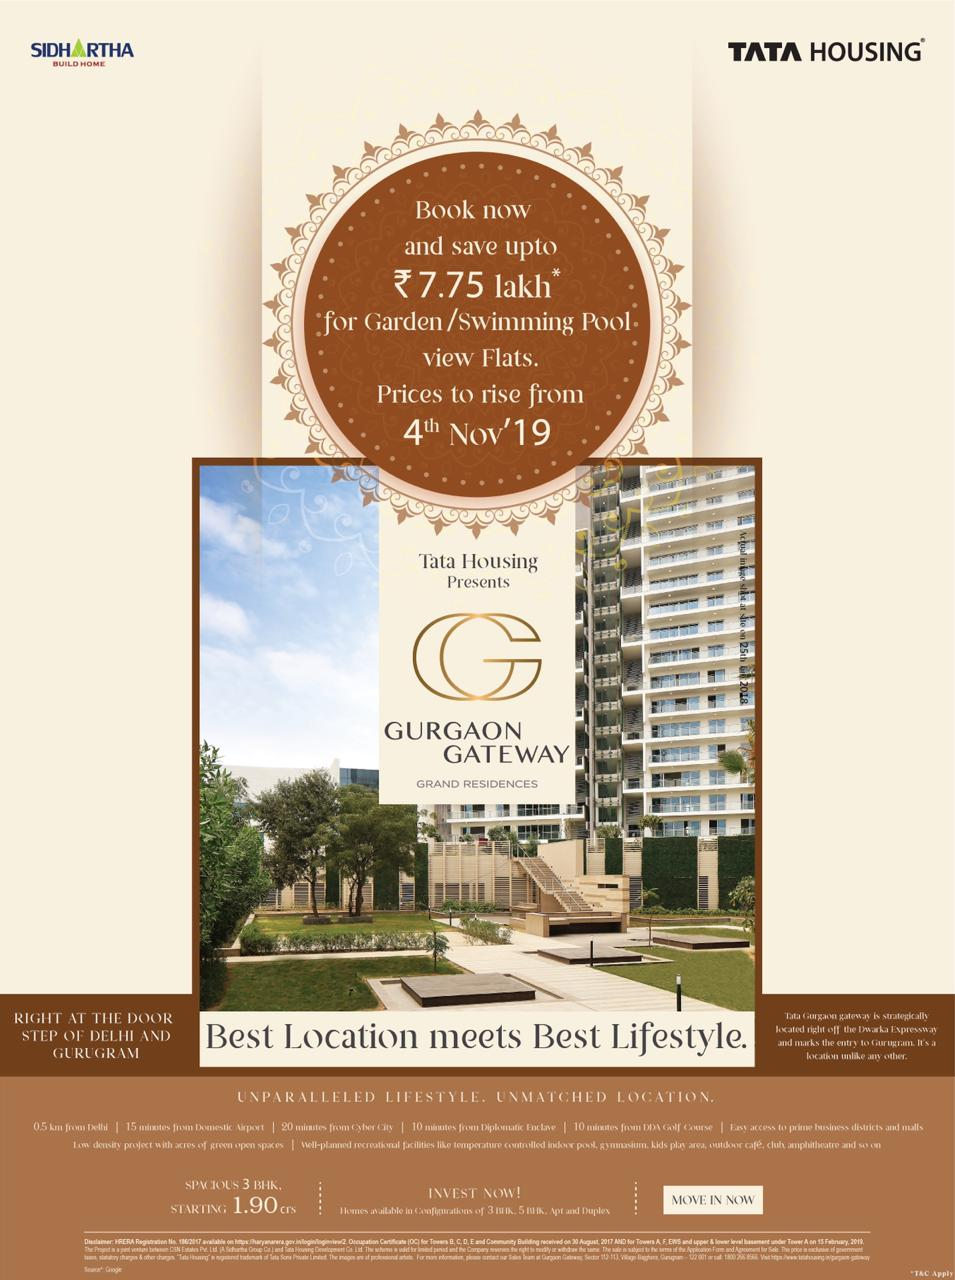 Book now and save up to Rs 7 75 Lac for garden swimming pool view flats at Tata Gurgaon Gateway Gurgaon